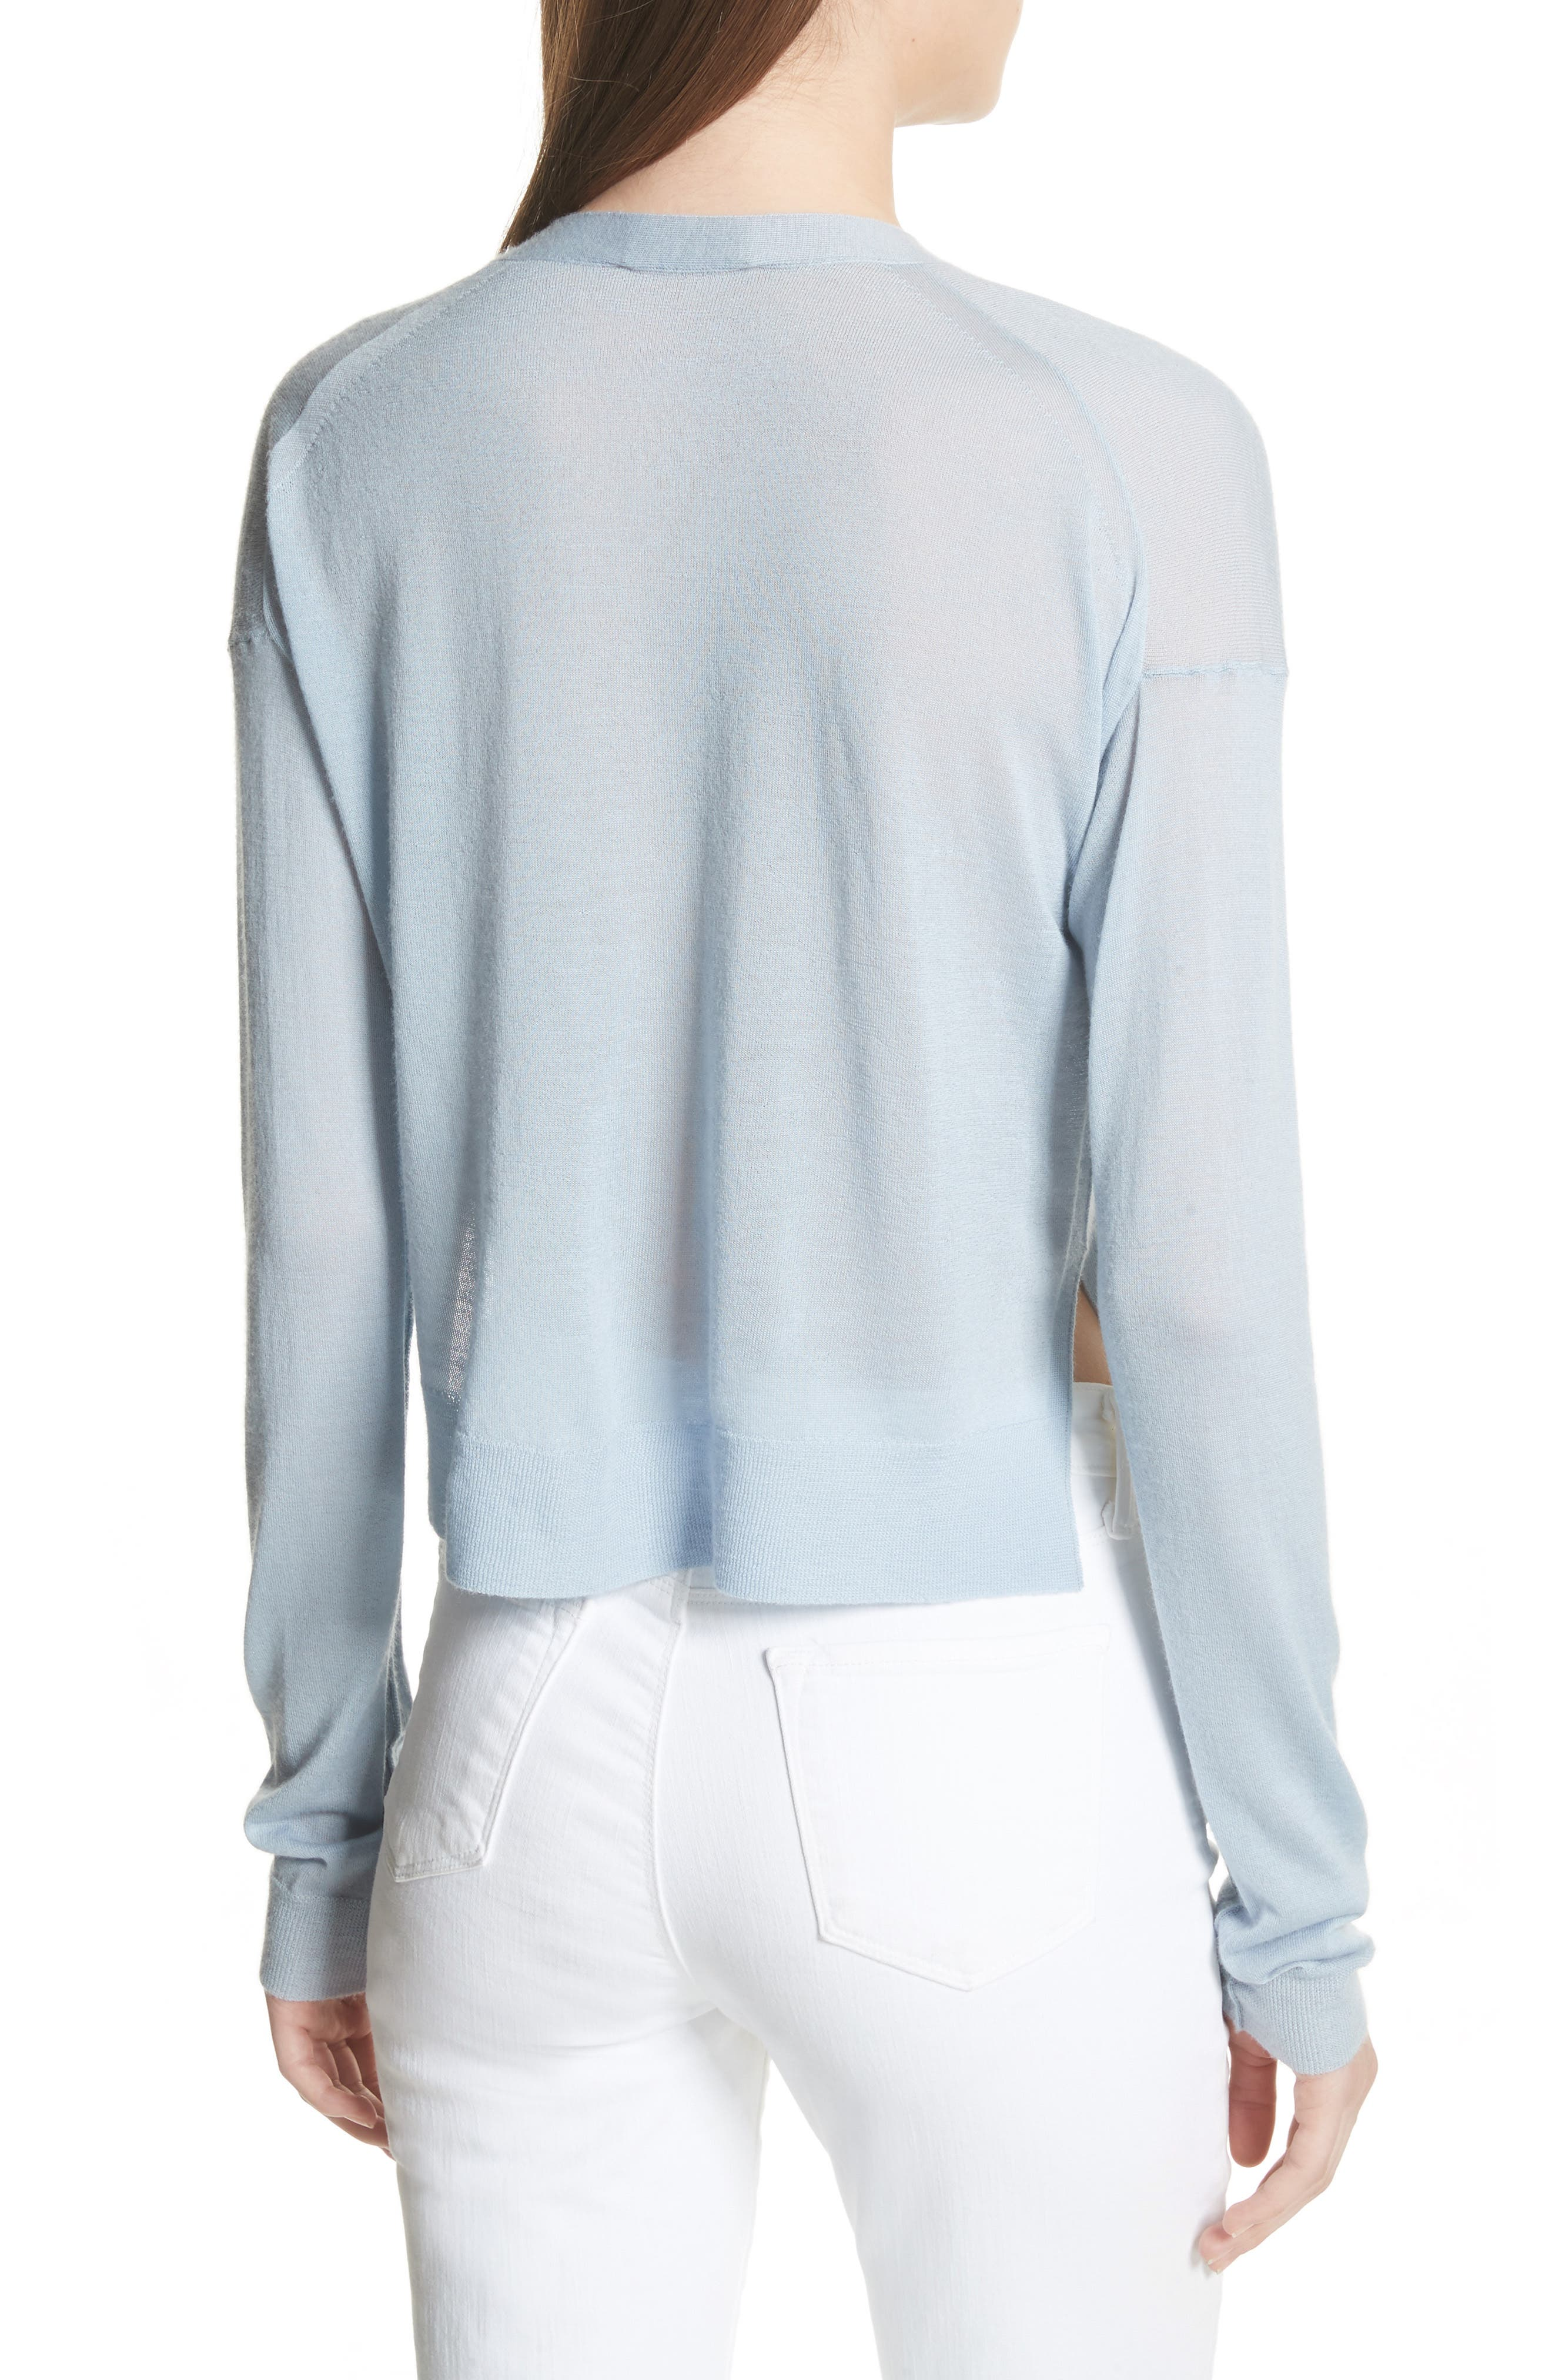 Hanelee Featherweight Cashmere Cardigan,                             Alternate thumbnail 2, color,